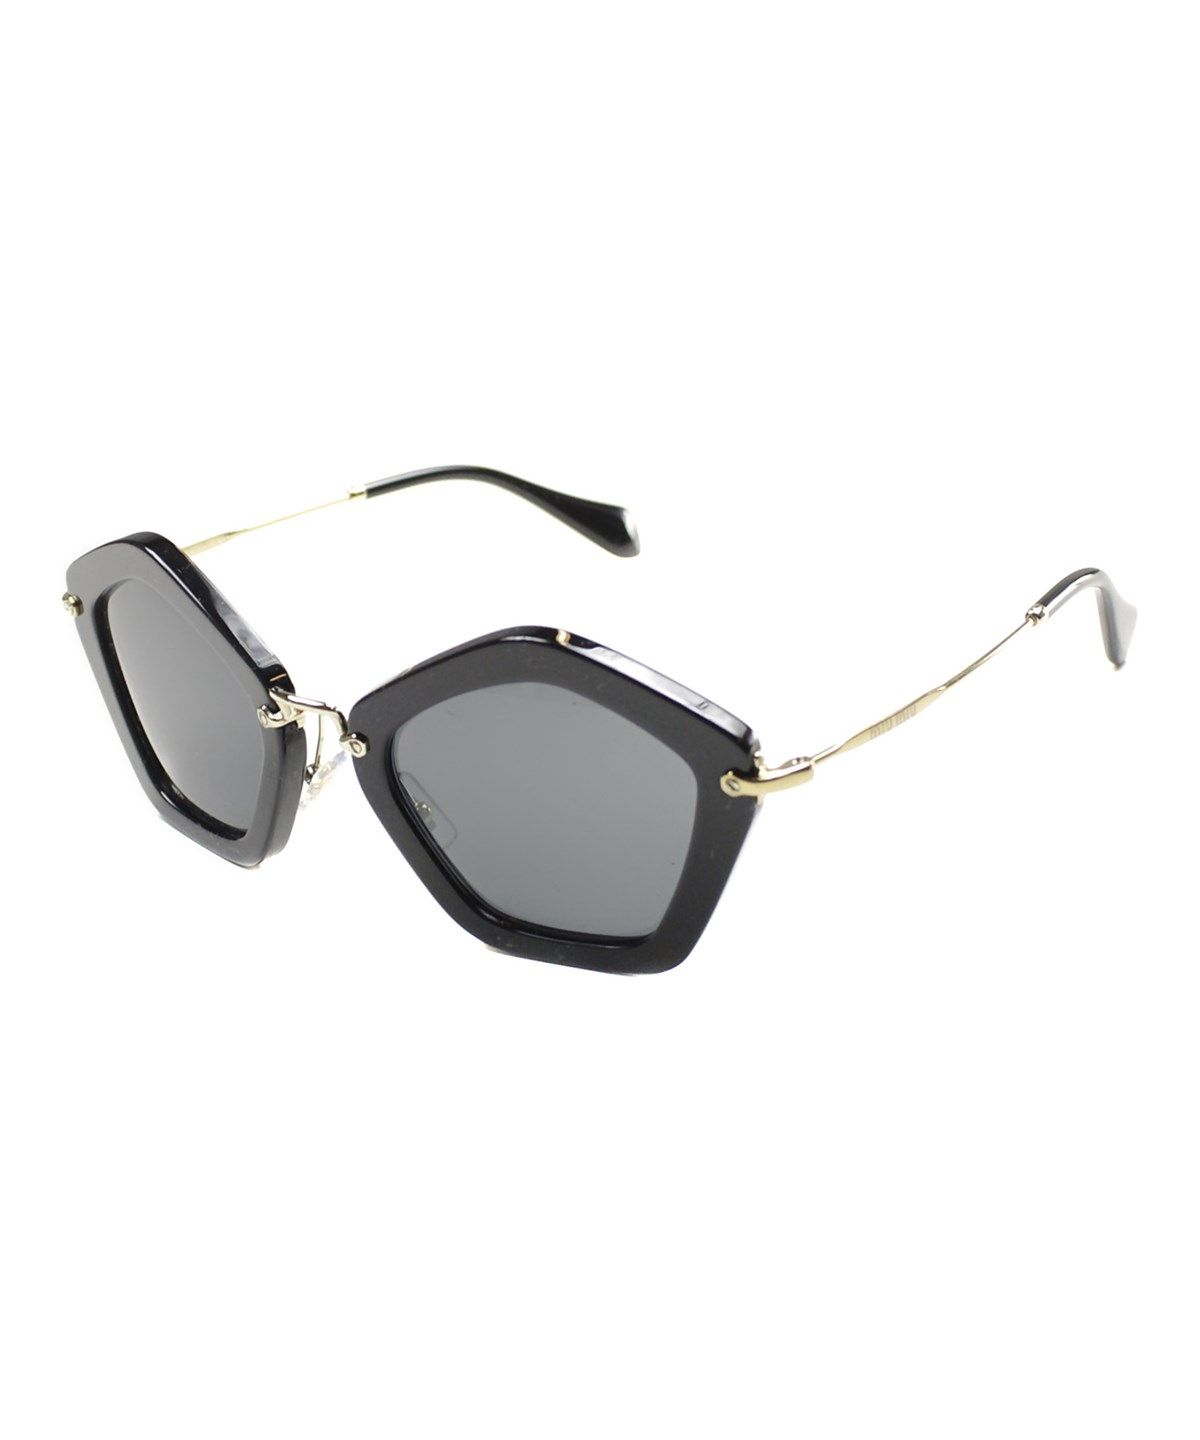 round-frame sunglasses - Black Fendi